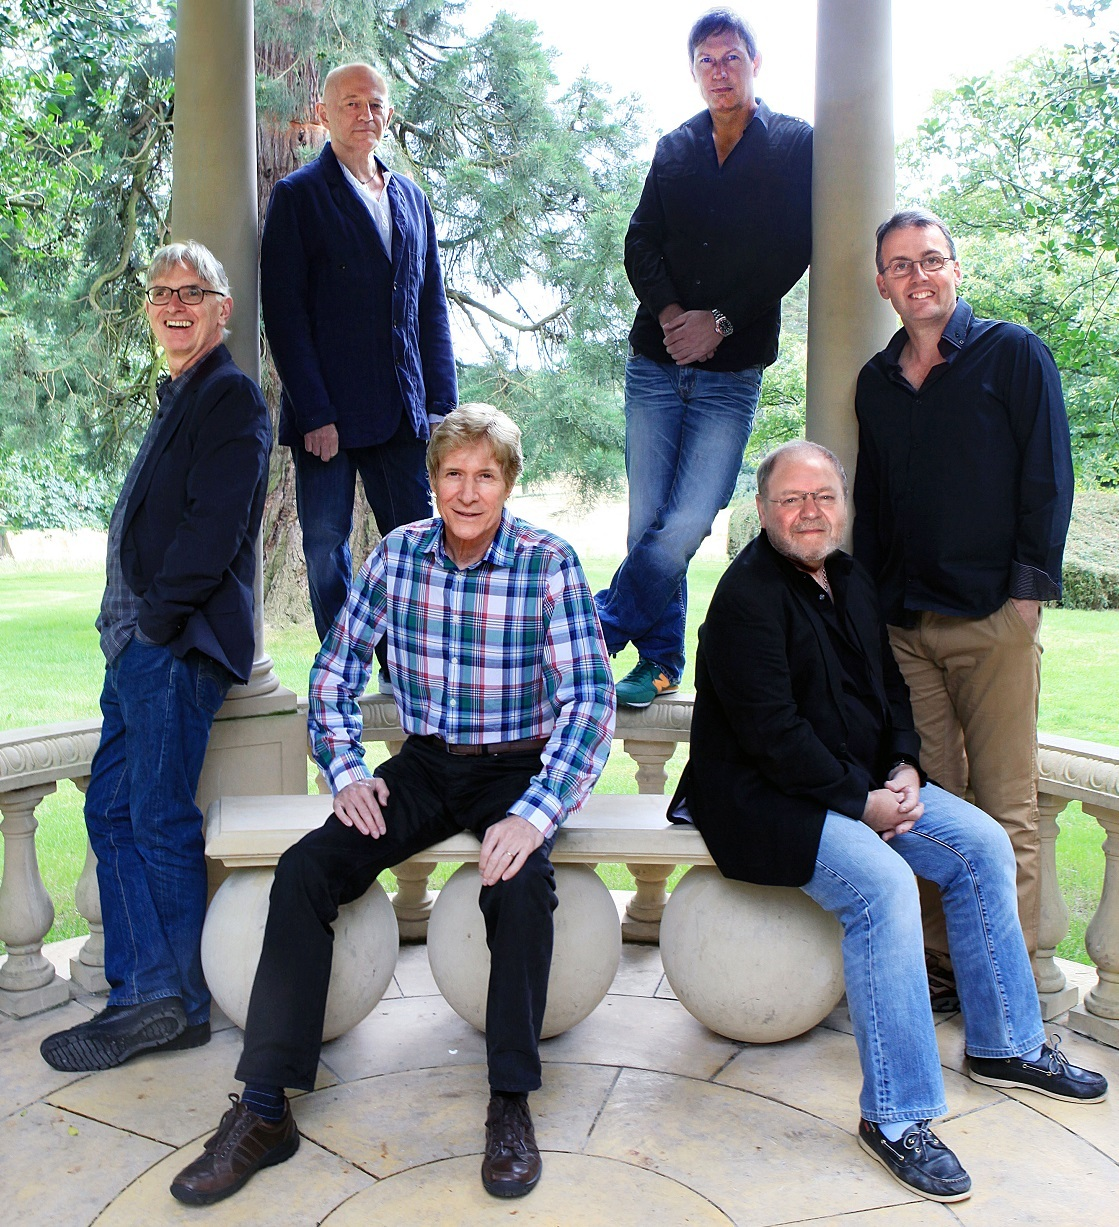 The Manfreds are set to take to the stage at Pontardawe Arts Centre on April 1